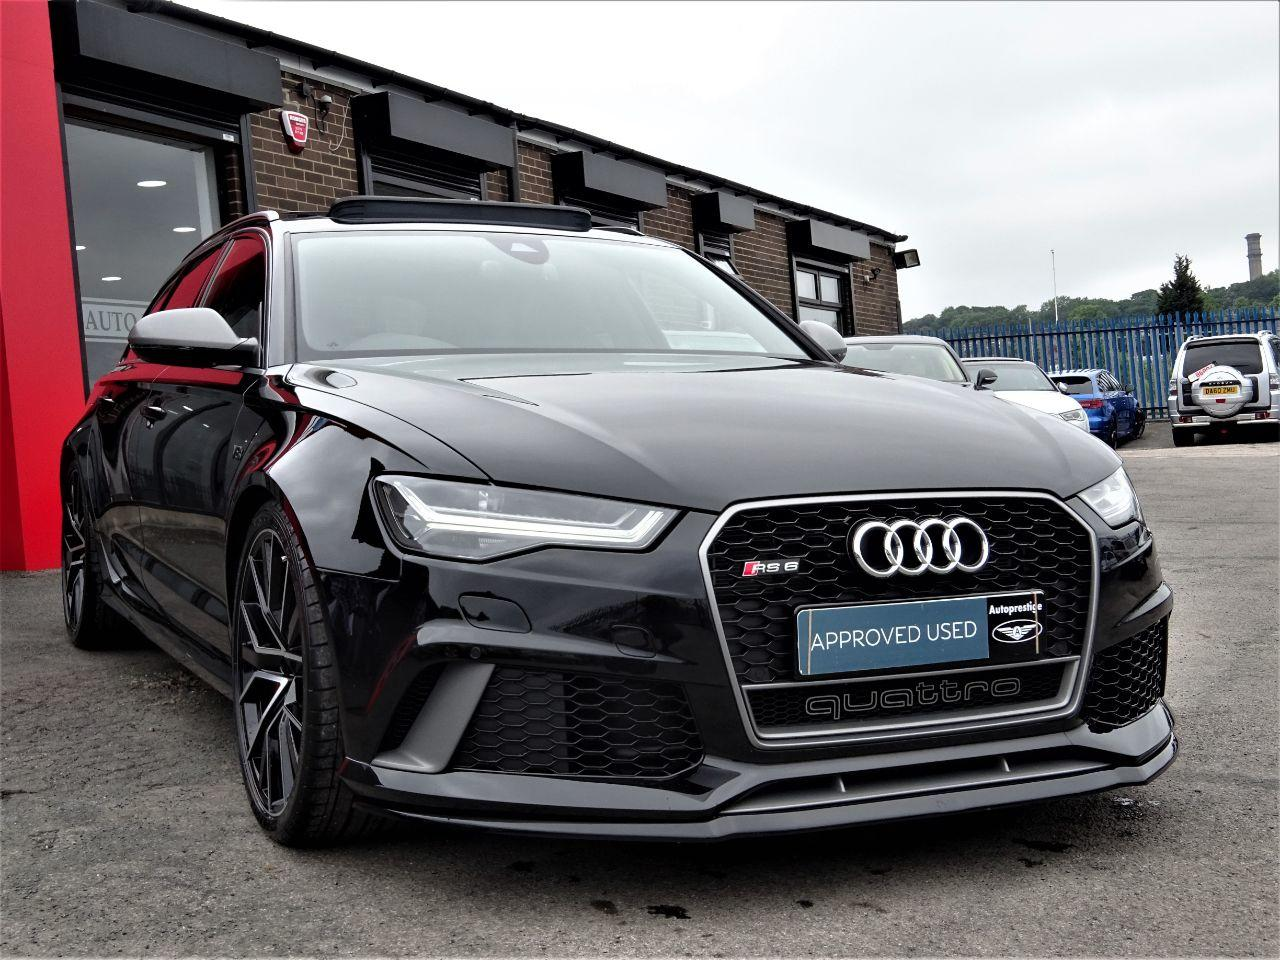 Audi RS6 4.0T FSI Quattro RS 6 Performance 5dr Tip Auto CRYSTAL BLACK BRAND NEW 120 MILES ONLY 67 REG 2018 Estate Petrol Black at Autoprestige Bradford